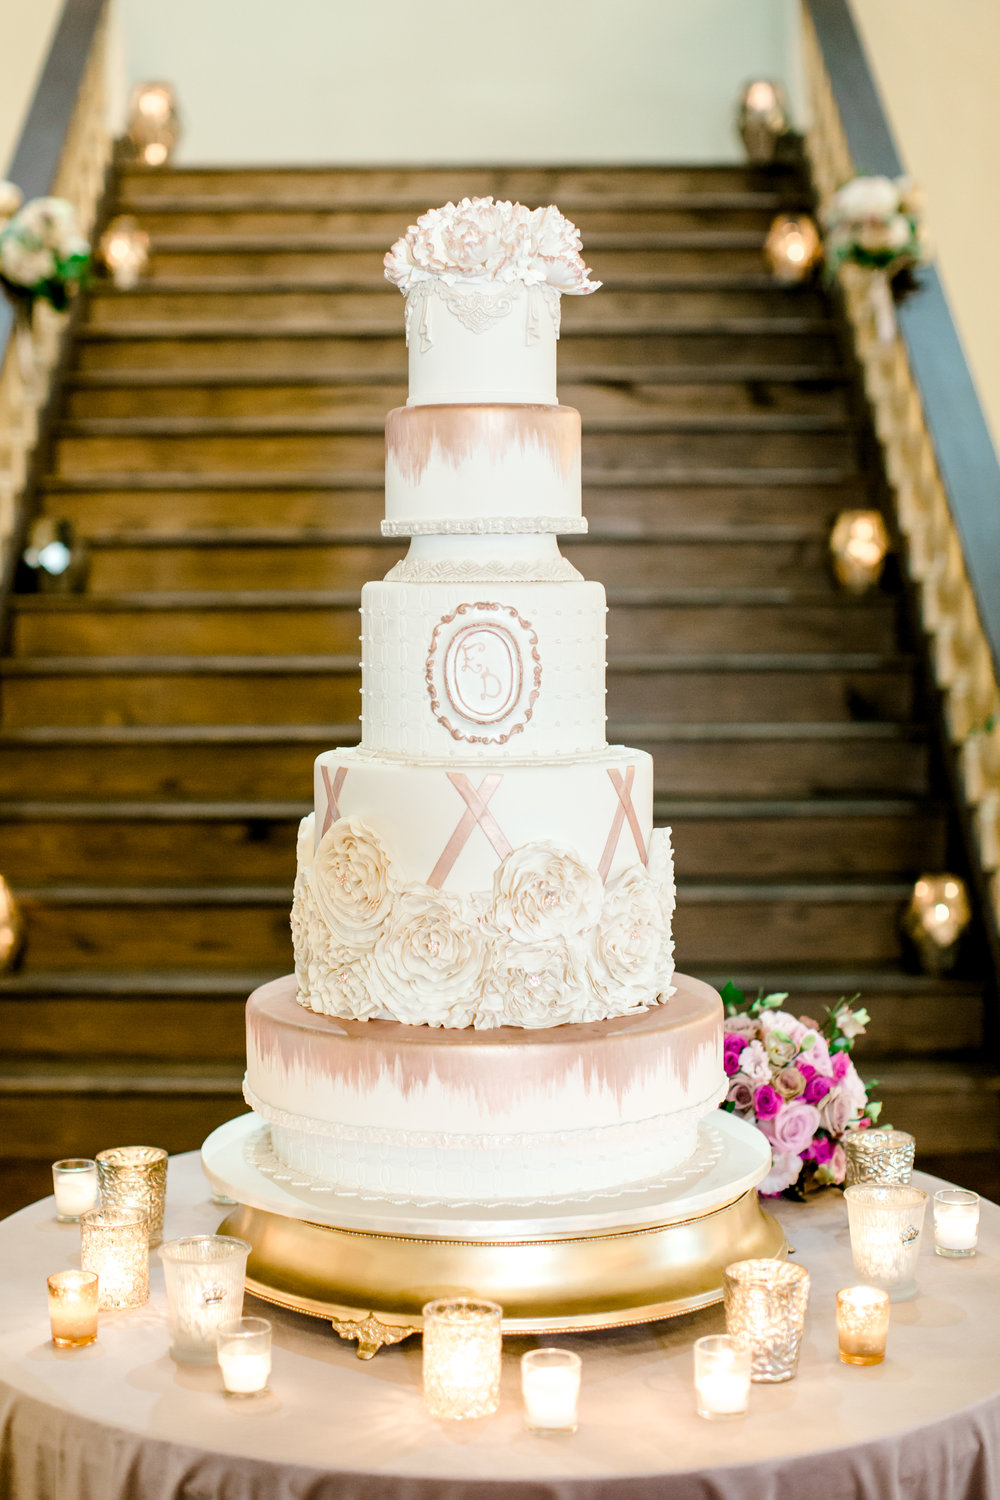 Ivory and Mauve cake by Edible Designs | Fondant with gold paint